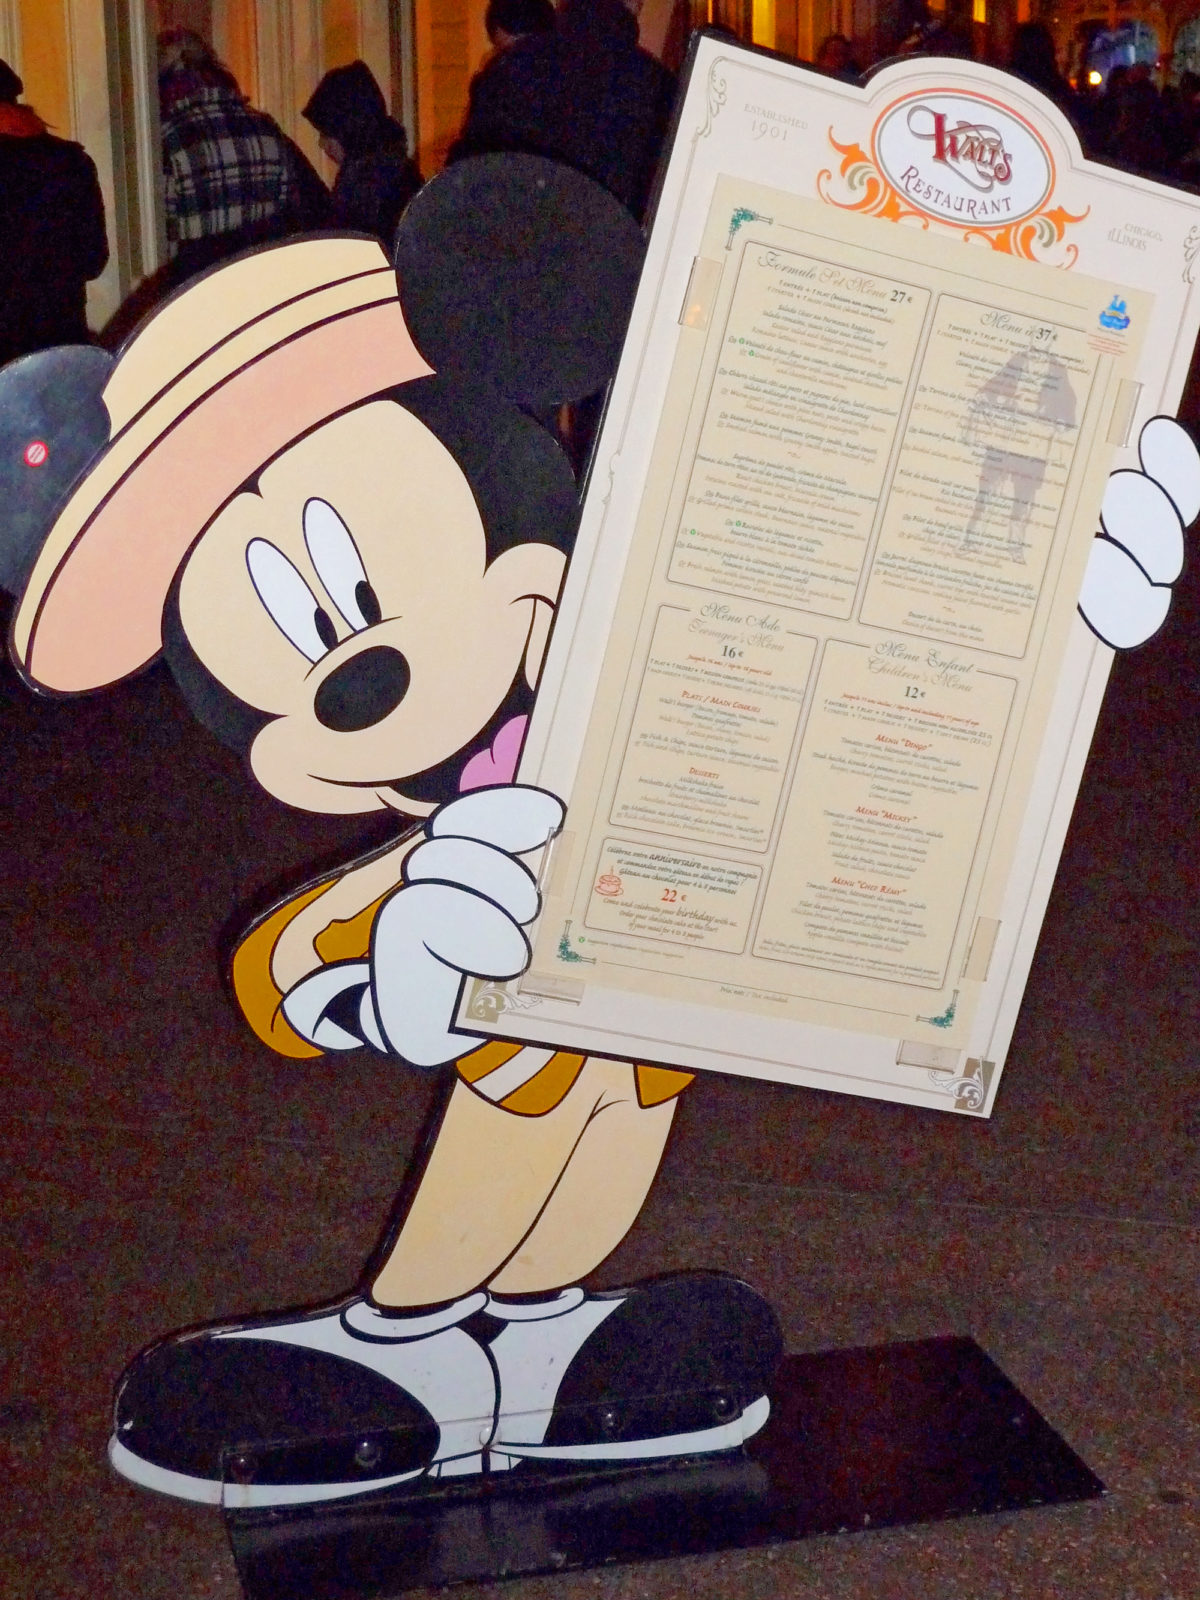 Image shows Mickey Mouse sign holding the menu for walt's restaurant in disneyland paris.